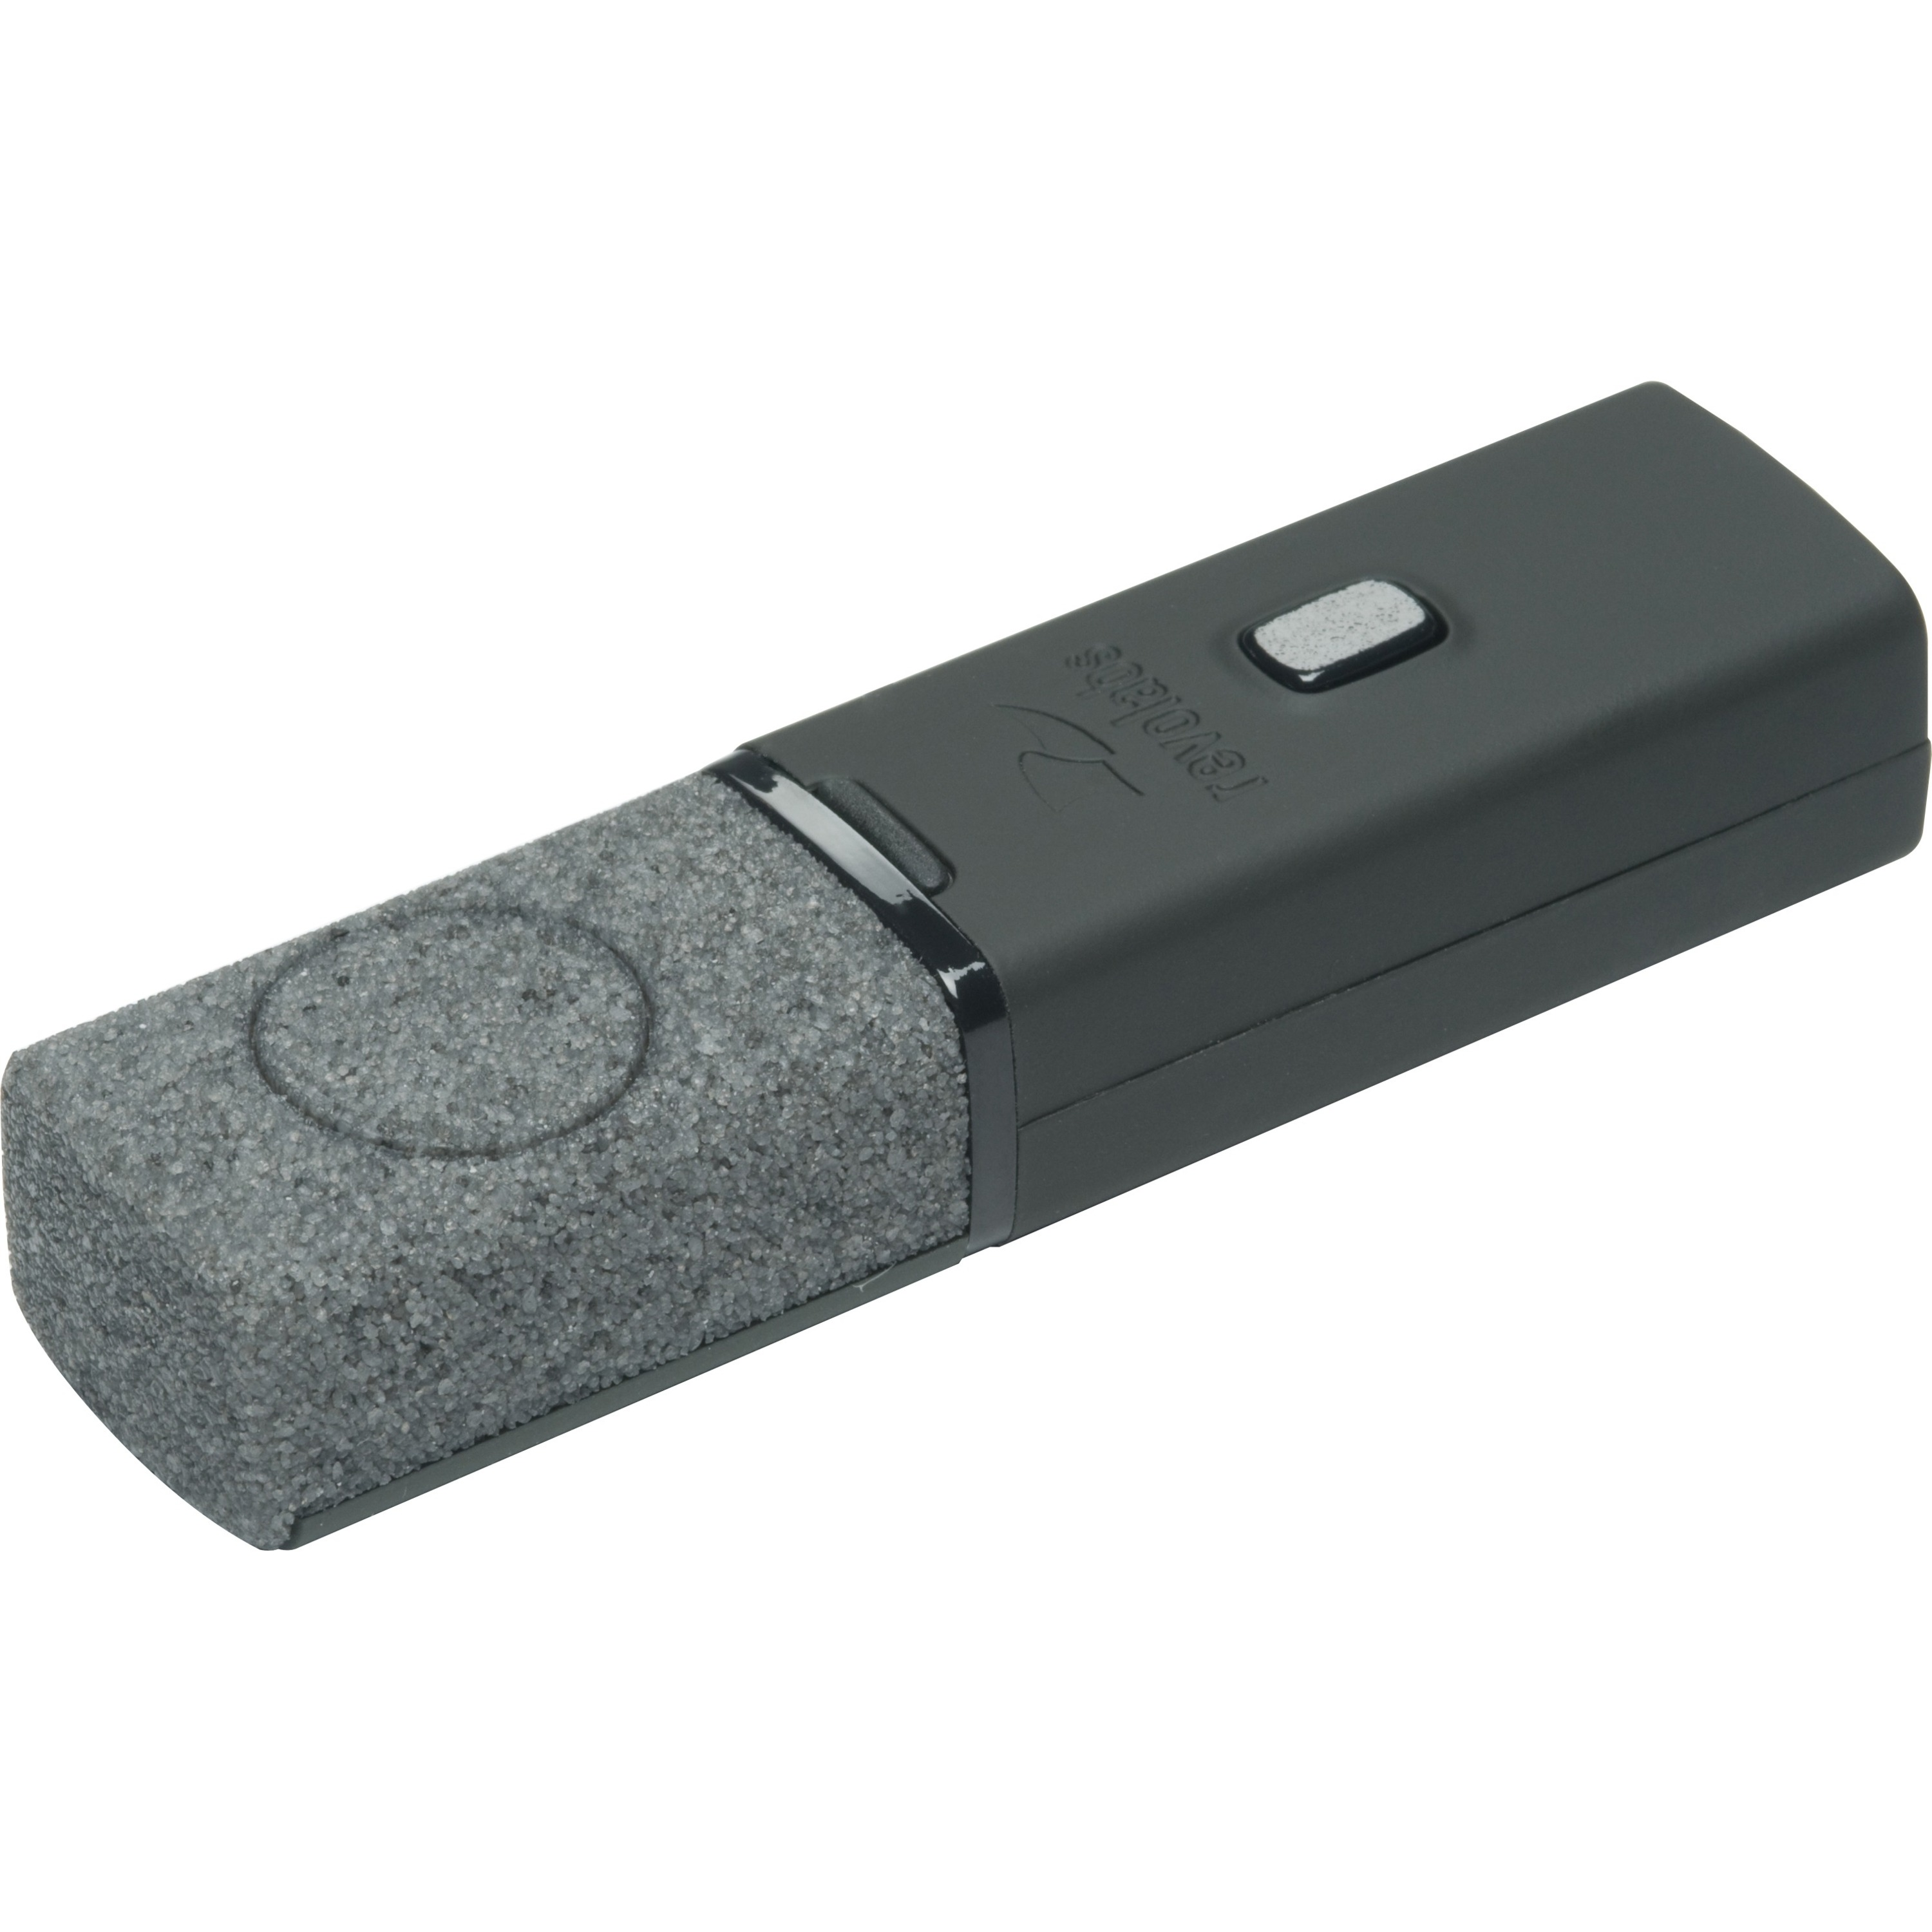 Revolabs 10-FLXMIC-OM Wireless Microphone_subImage_1